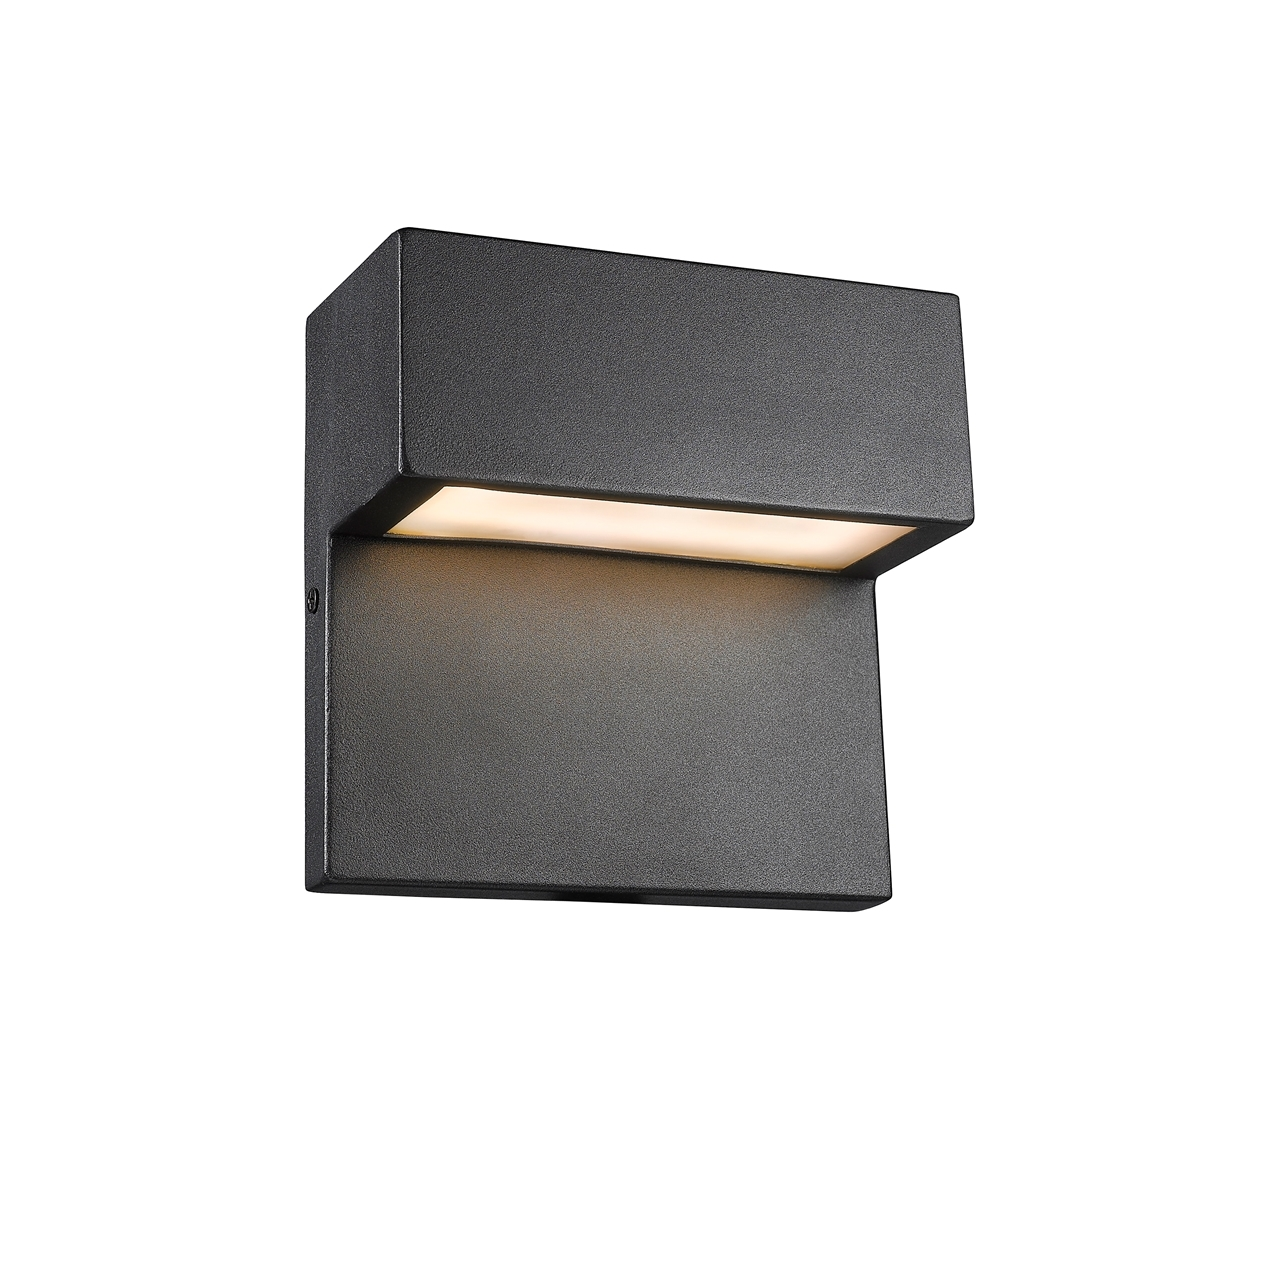 Picture Of CH2R902BK06 ODL LED Outdoor Sconce